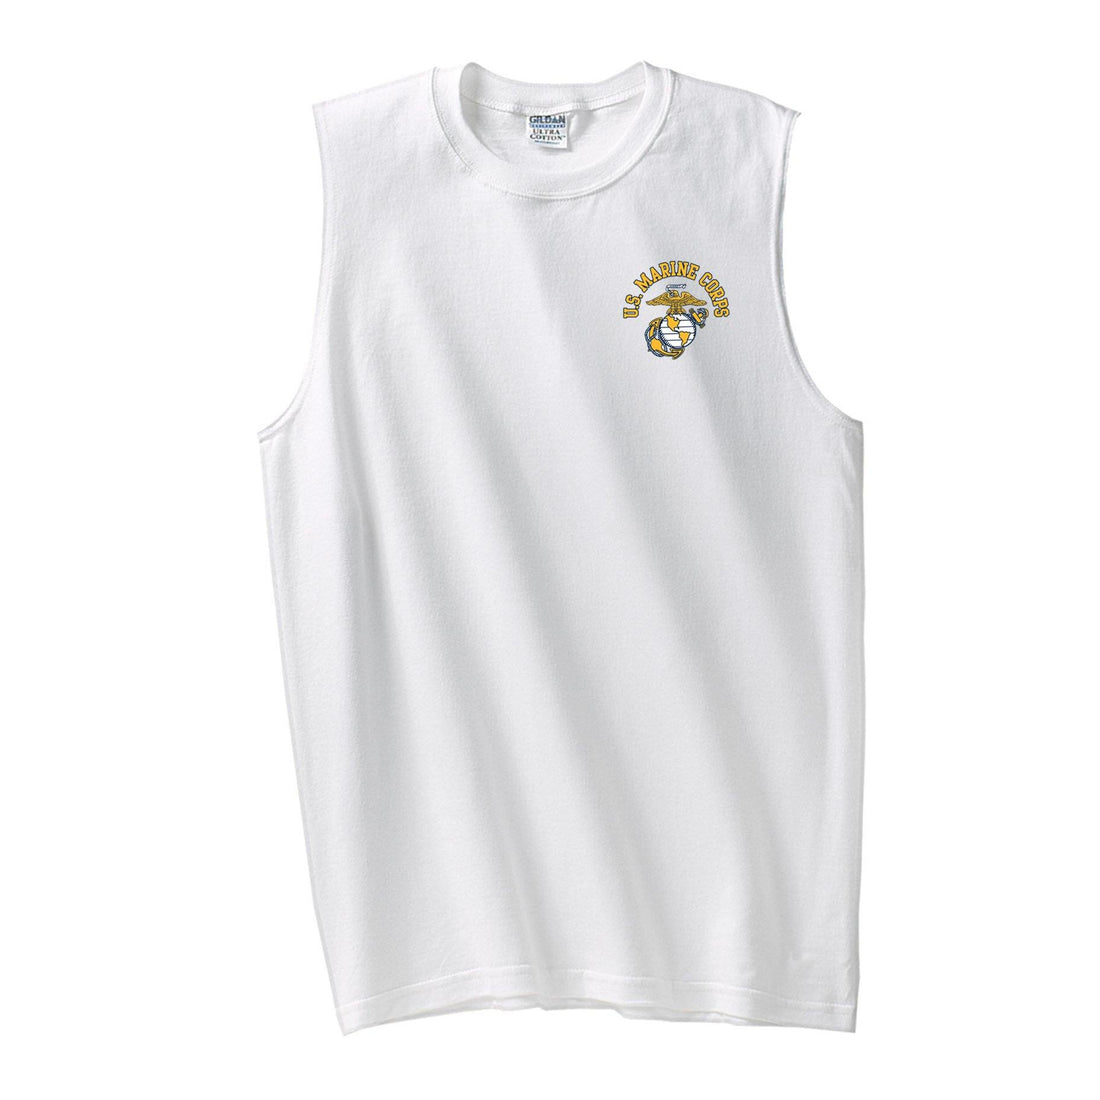 U.S. Marine Corps Chest Seal Sleeveless Tee